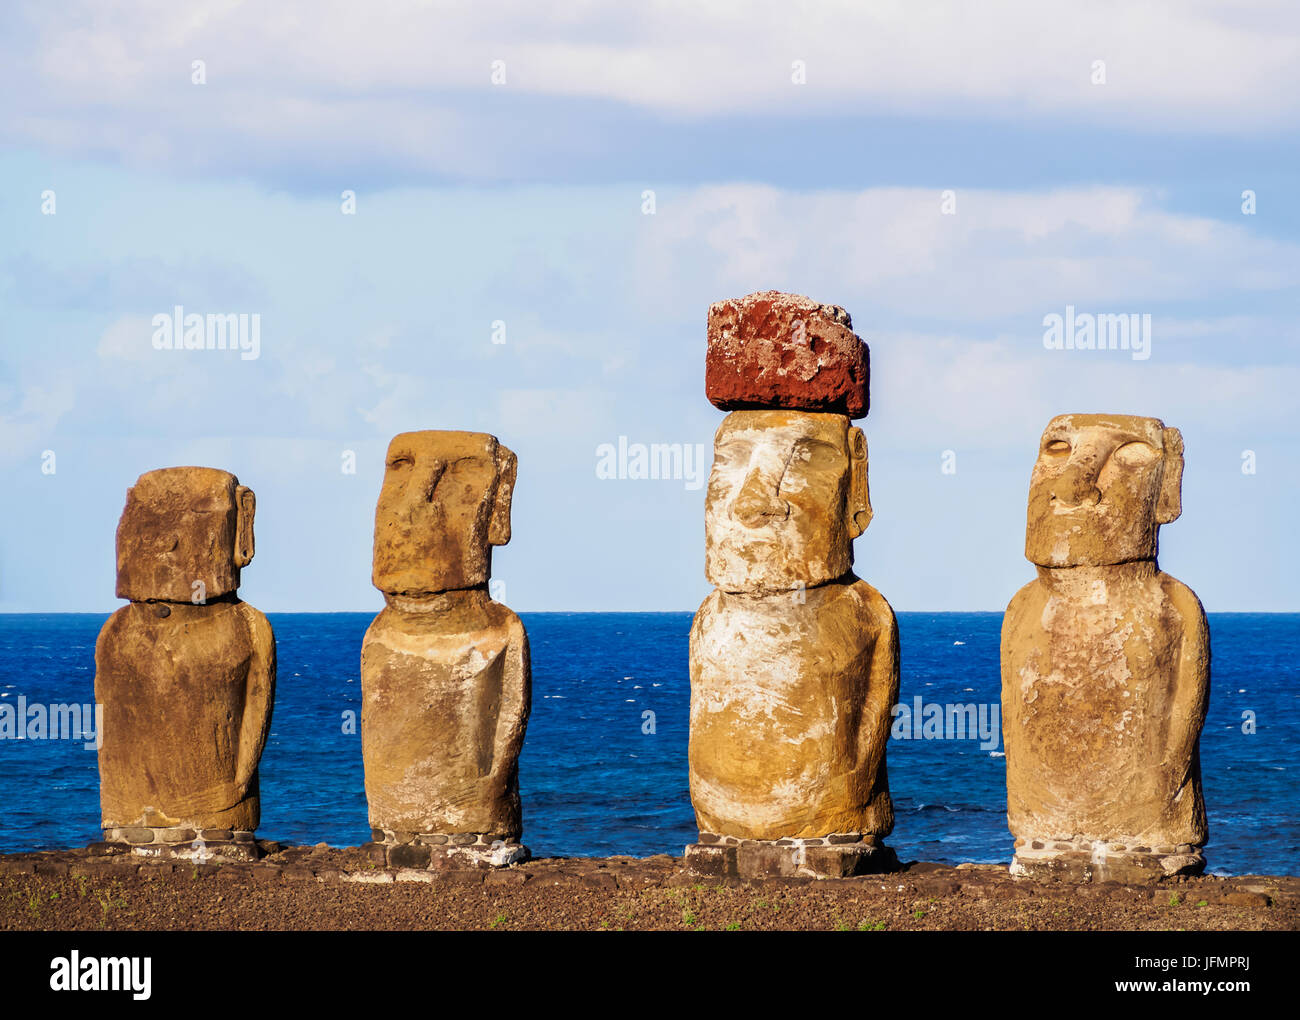 Moais in Ahu Tongariki, Rapa Nui National Park, Easter Island, Chile Stock Photo